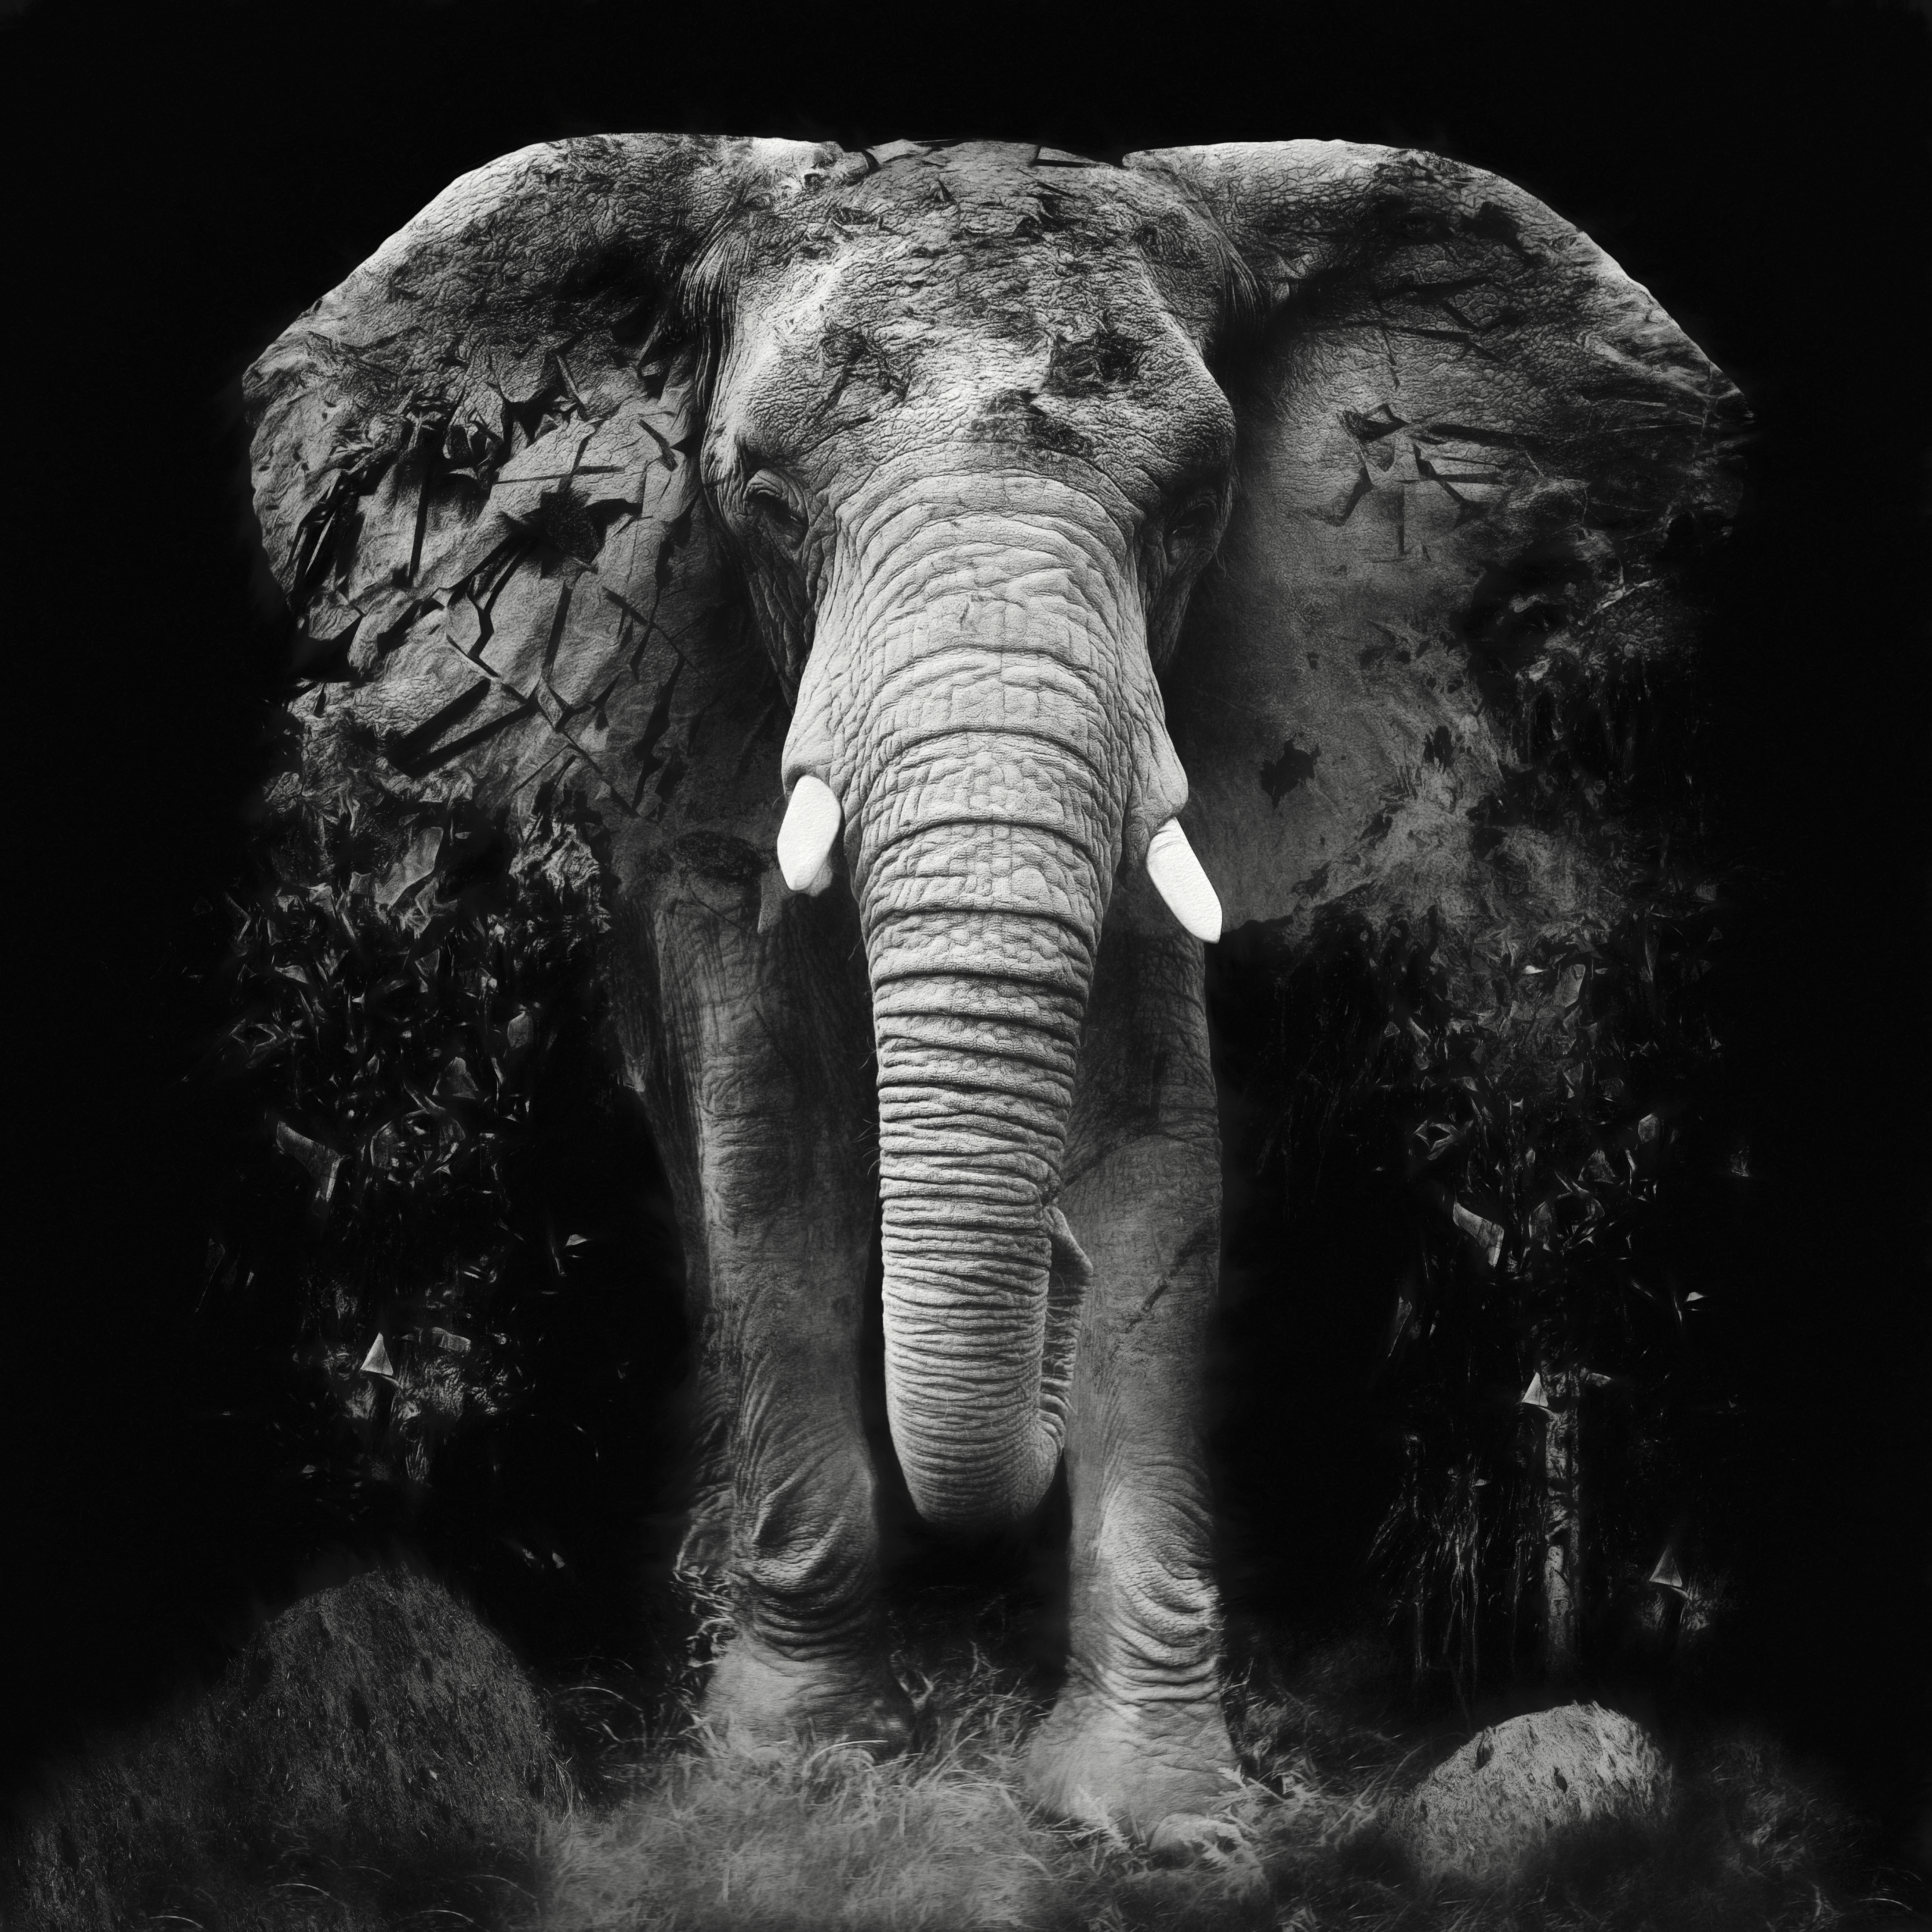 Erik Brede; The Disappearance 7 Of 10, 2014, Original Photography Black and White, 60 x 60 cm. Artwork description: 241 Only 4 prints left  The Disappearance of the Elephant - Unique piece of photoart that is both amazingly decorative but also has a deep political message aEUR